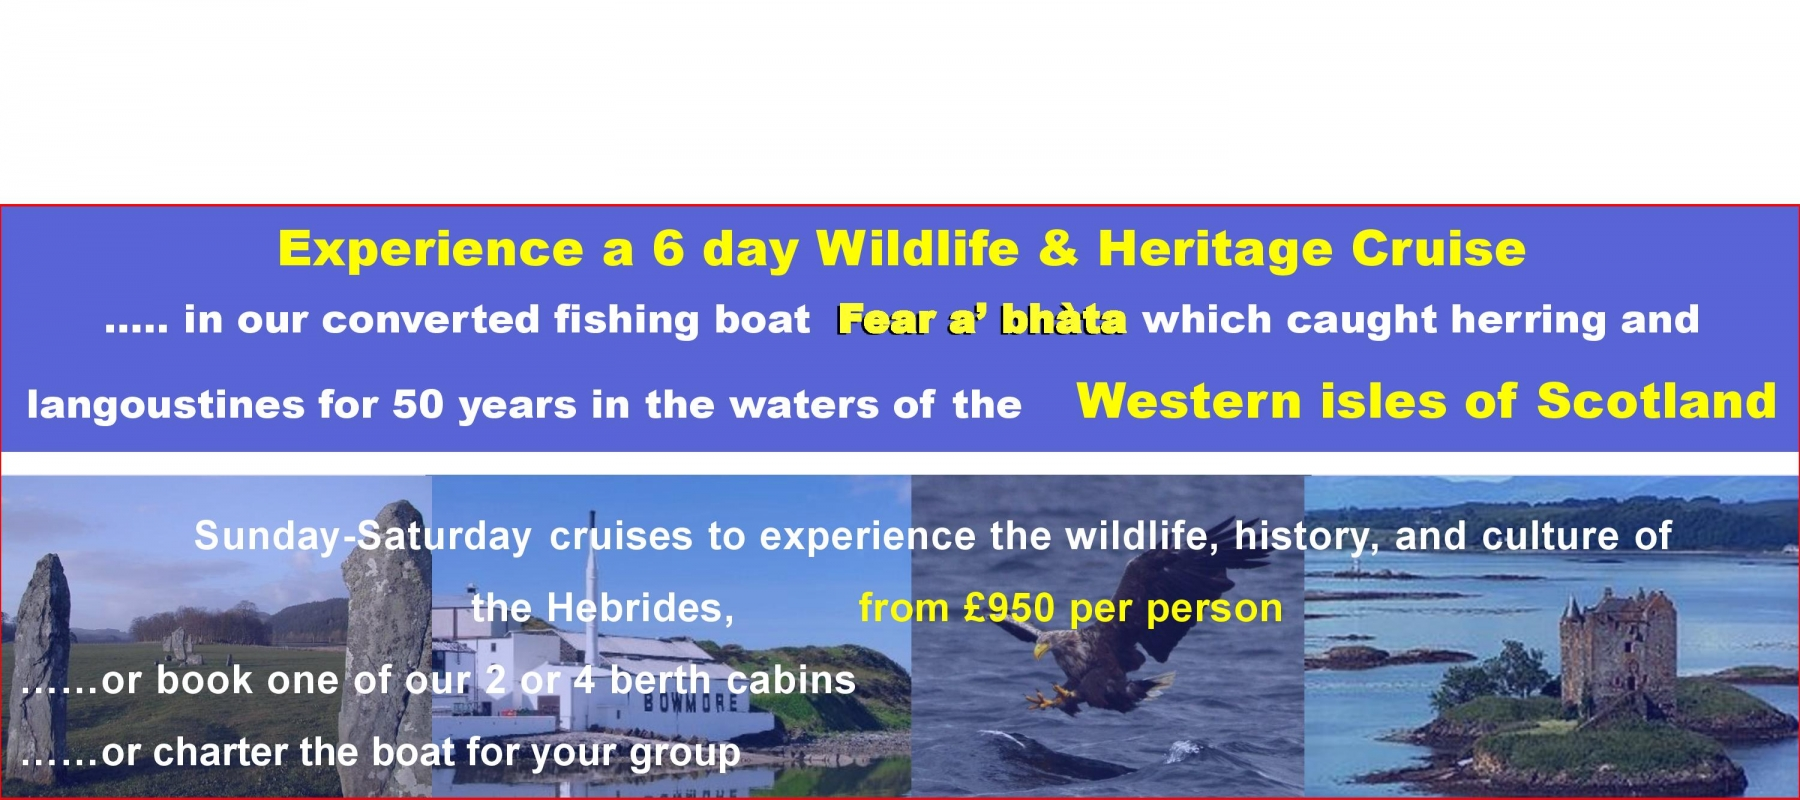 Experience a 6 day Wildlife & Heritage Cruise 11 Oct 19-2-page-001